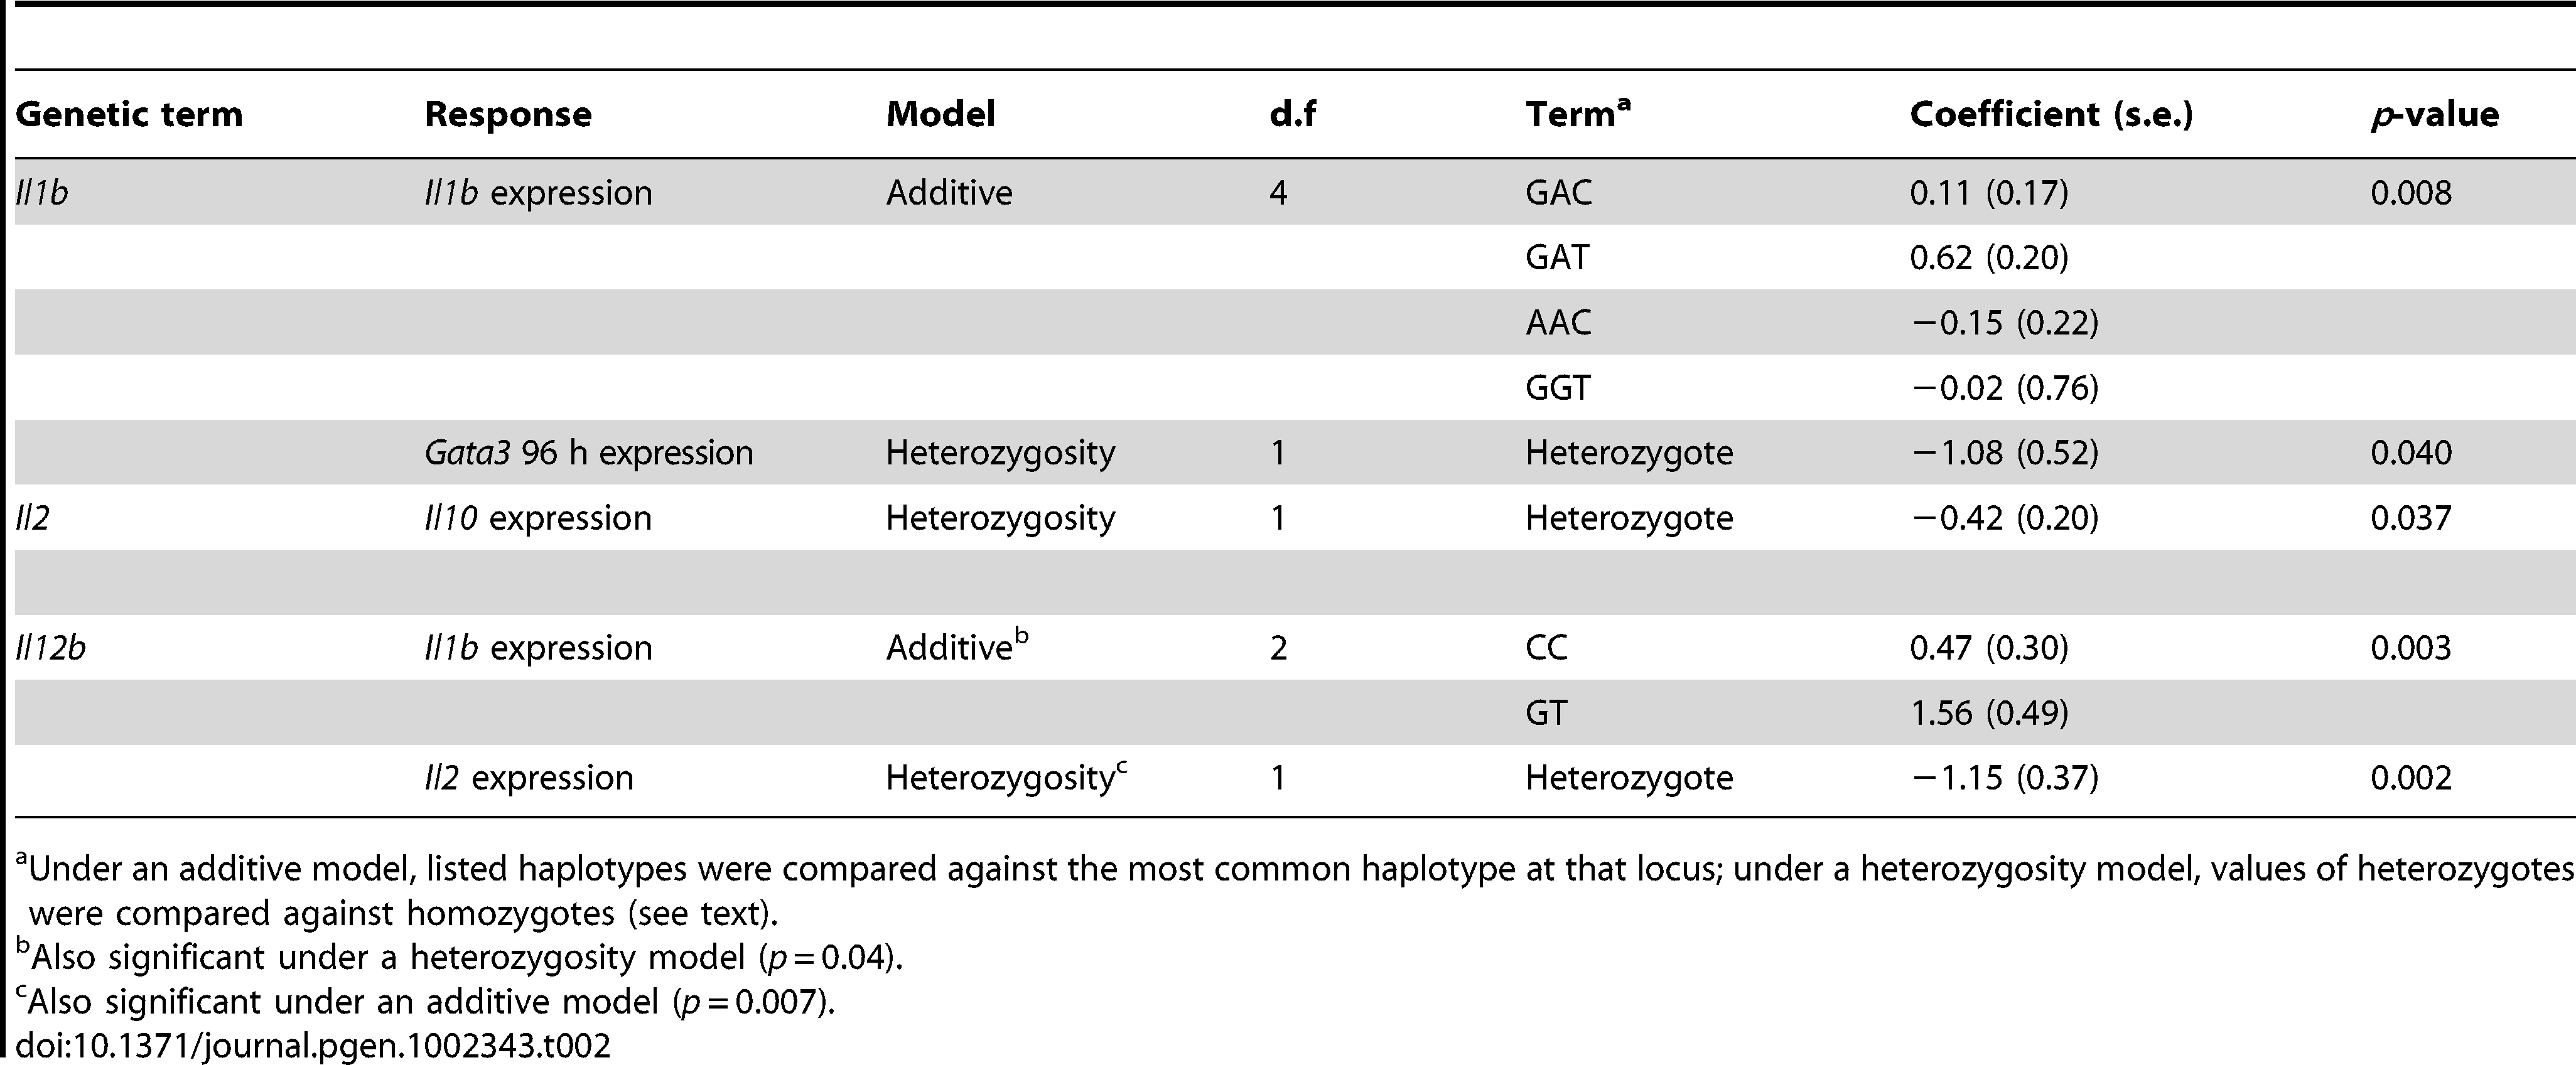 Genetic terms significantly associated with variation in immunological parameters.